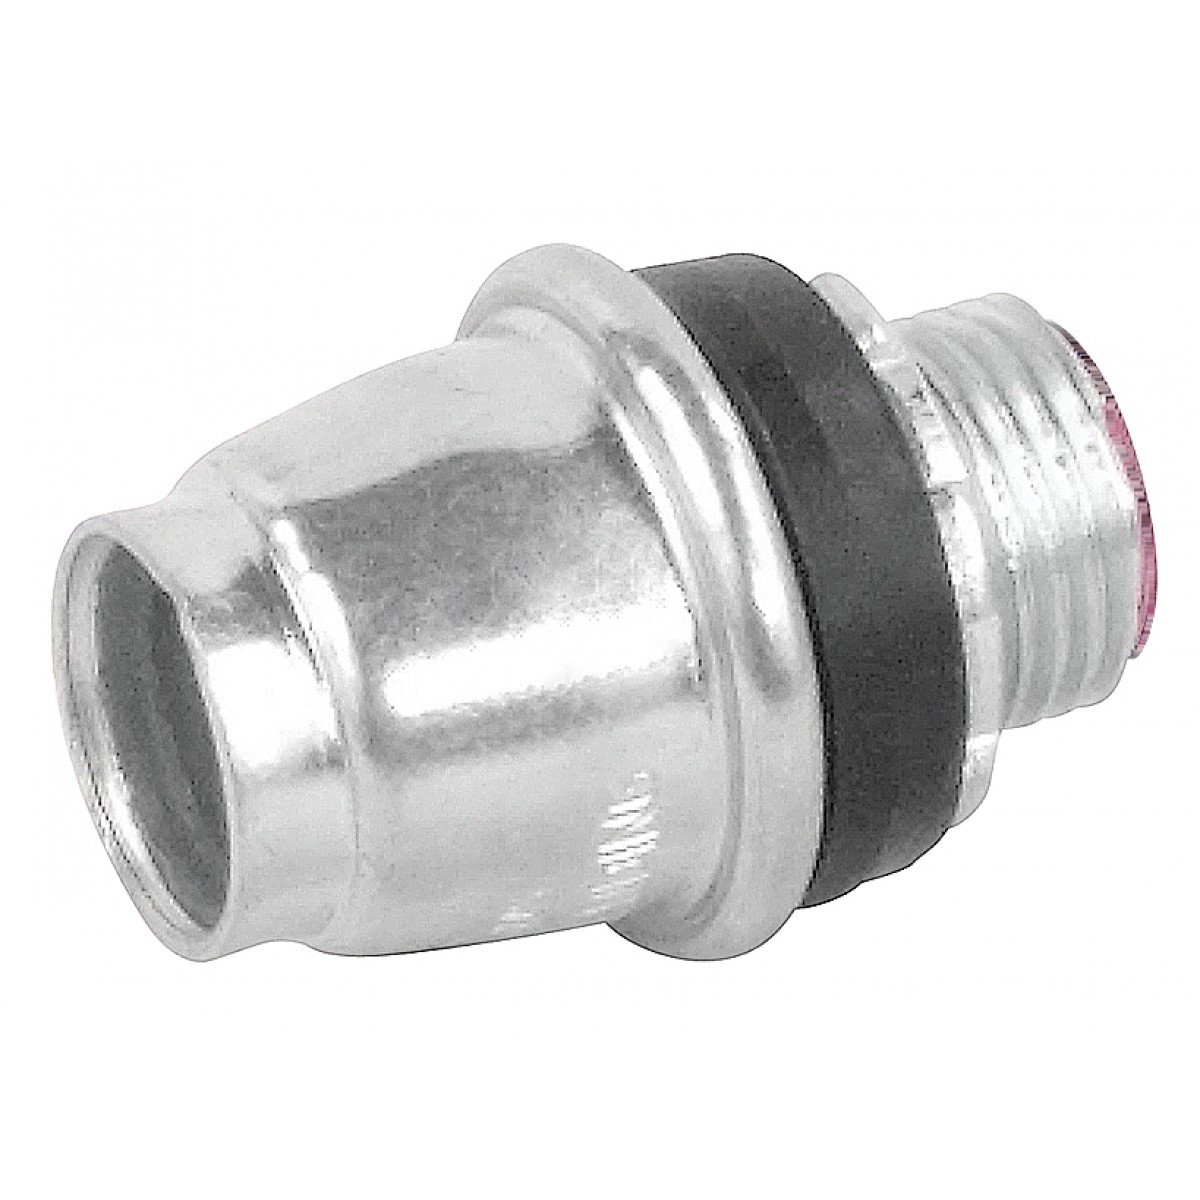 5 Pcs, Snap In Emt Connector, 1-1/2 In., Insulated